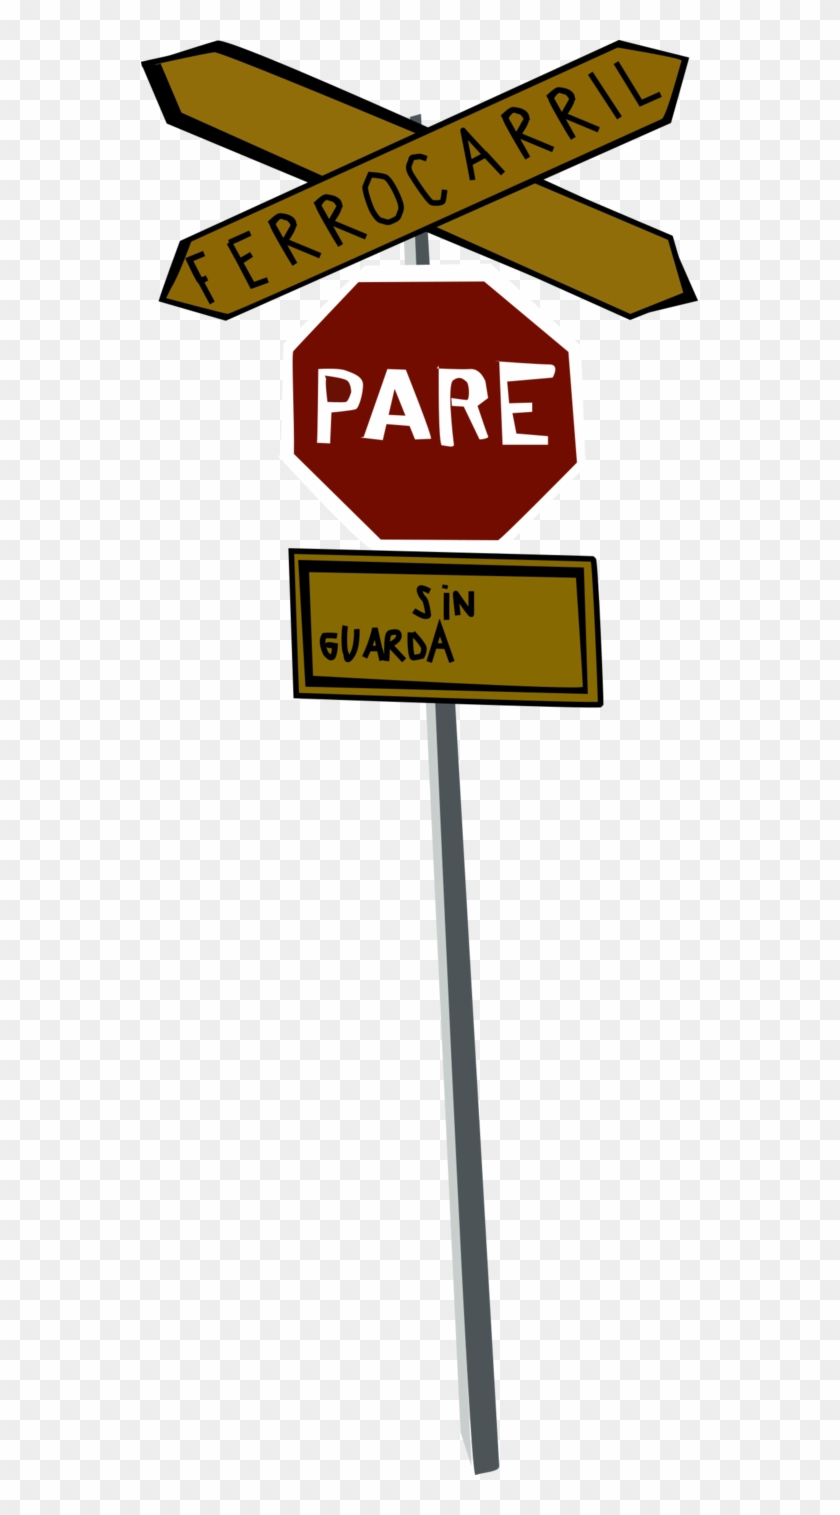 graphic regarding Railroad Crossing Sign Printable identify Peru Railroad Crossing Indicator As a result of Oceanrailroader - Targeted traffic